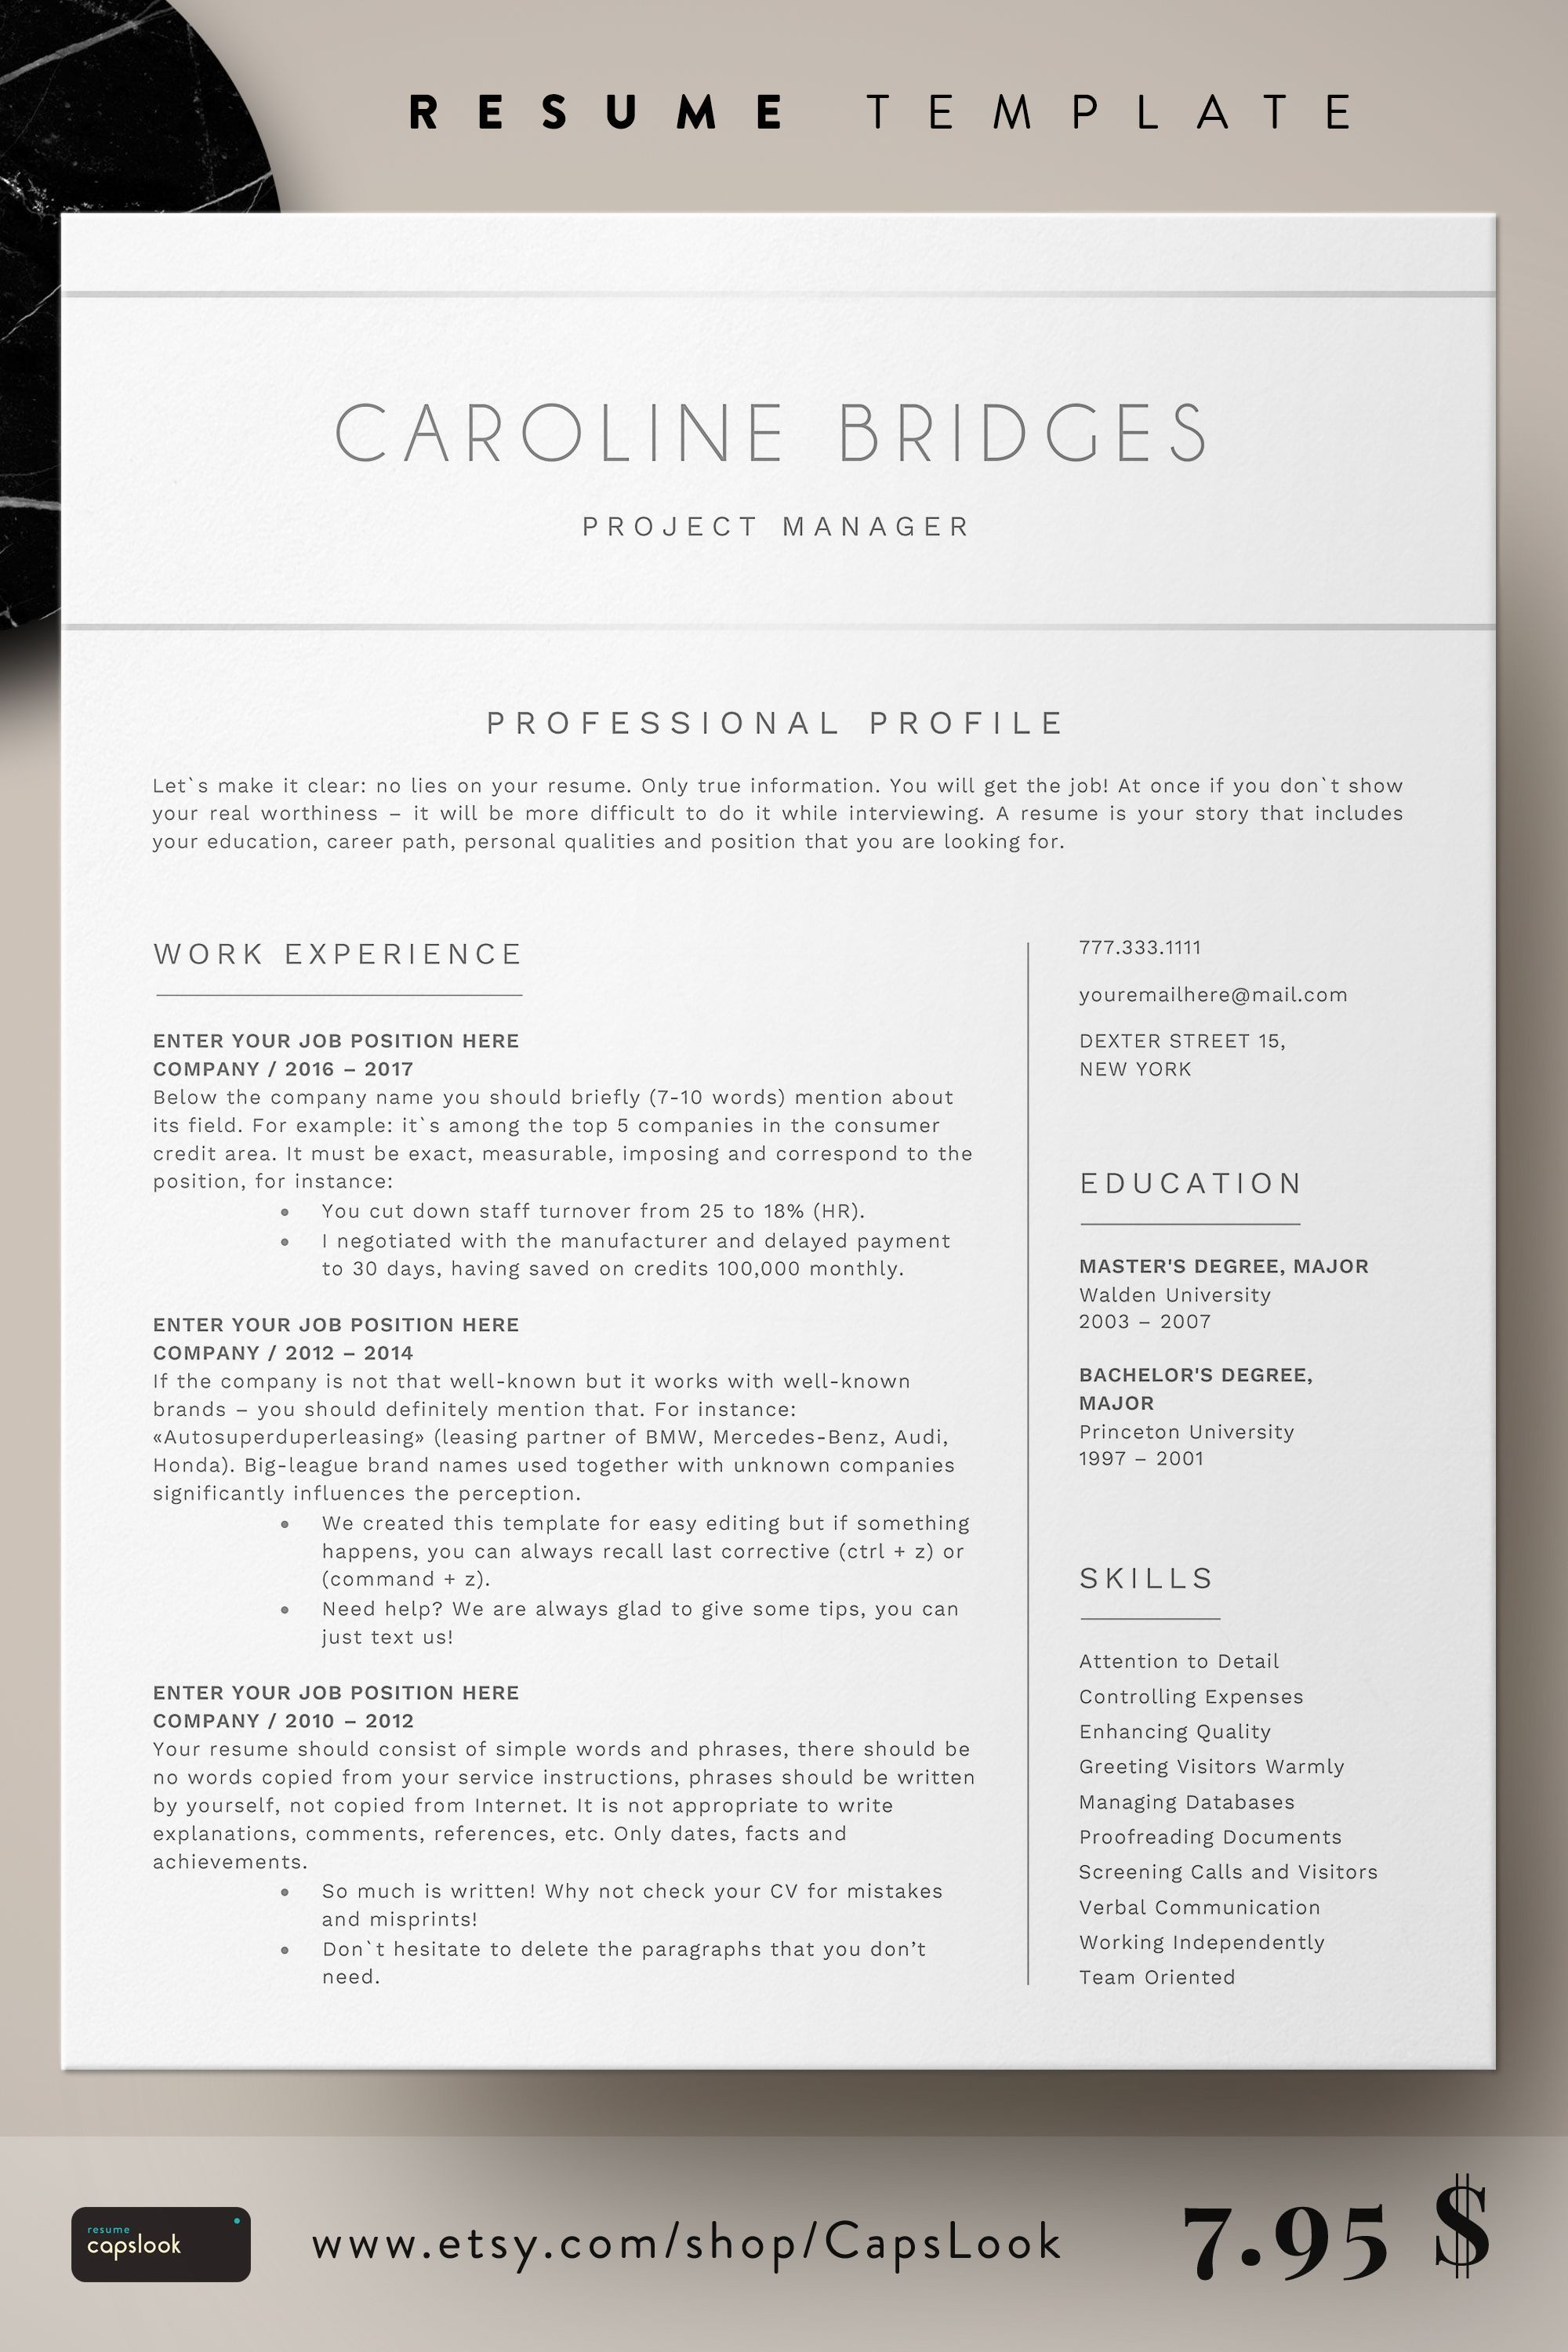 Simple resume format for Microsoft Word! Clean resume